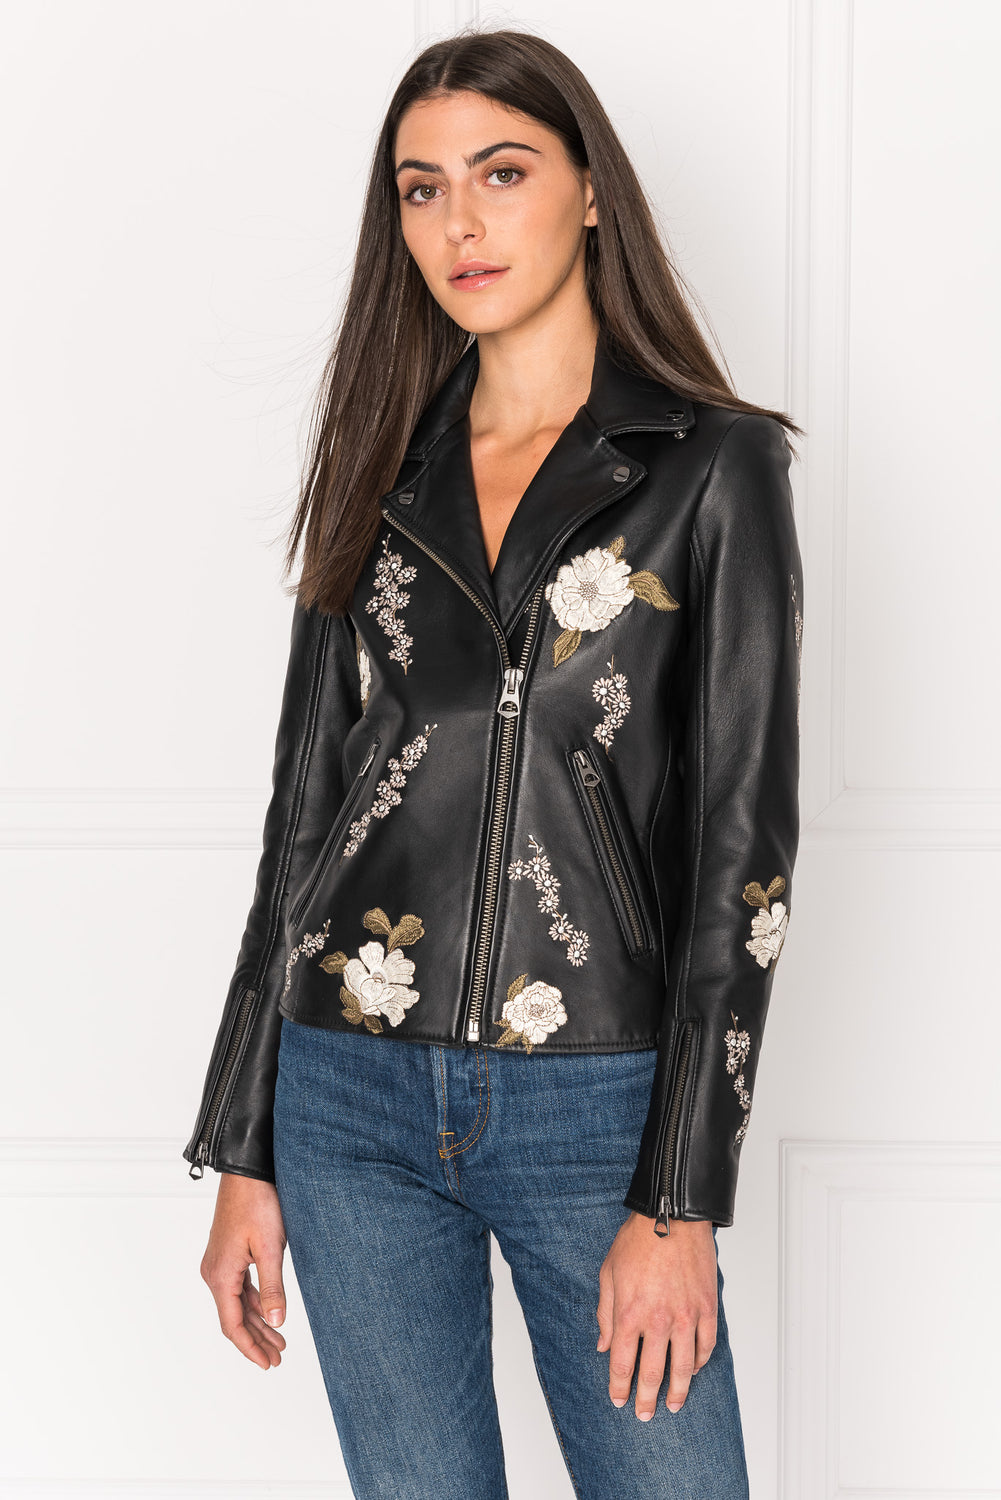 ETANA Embroidered Floral Leather Biker Jacket